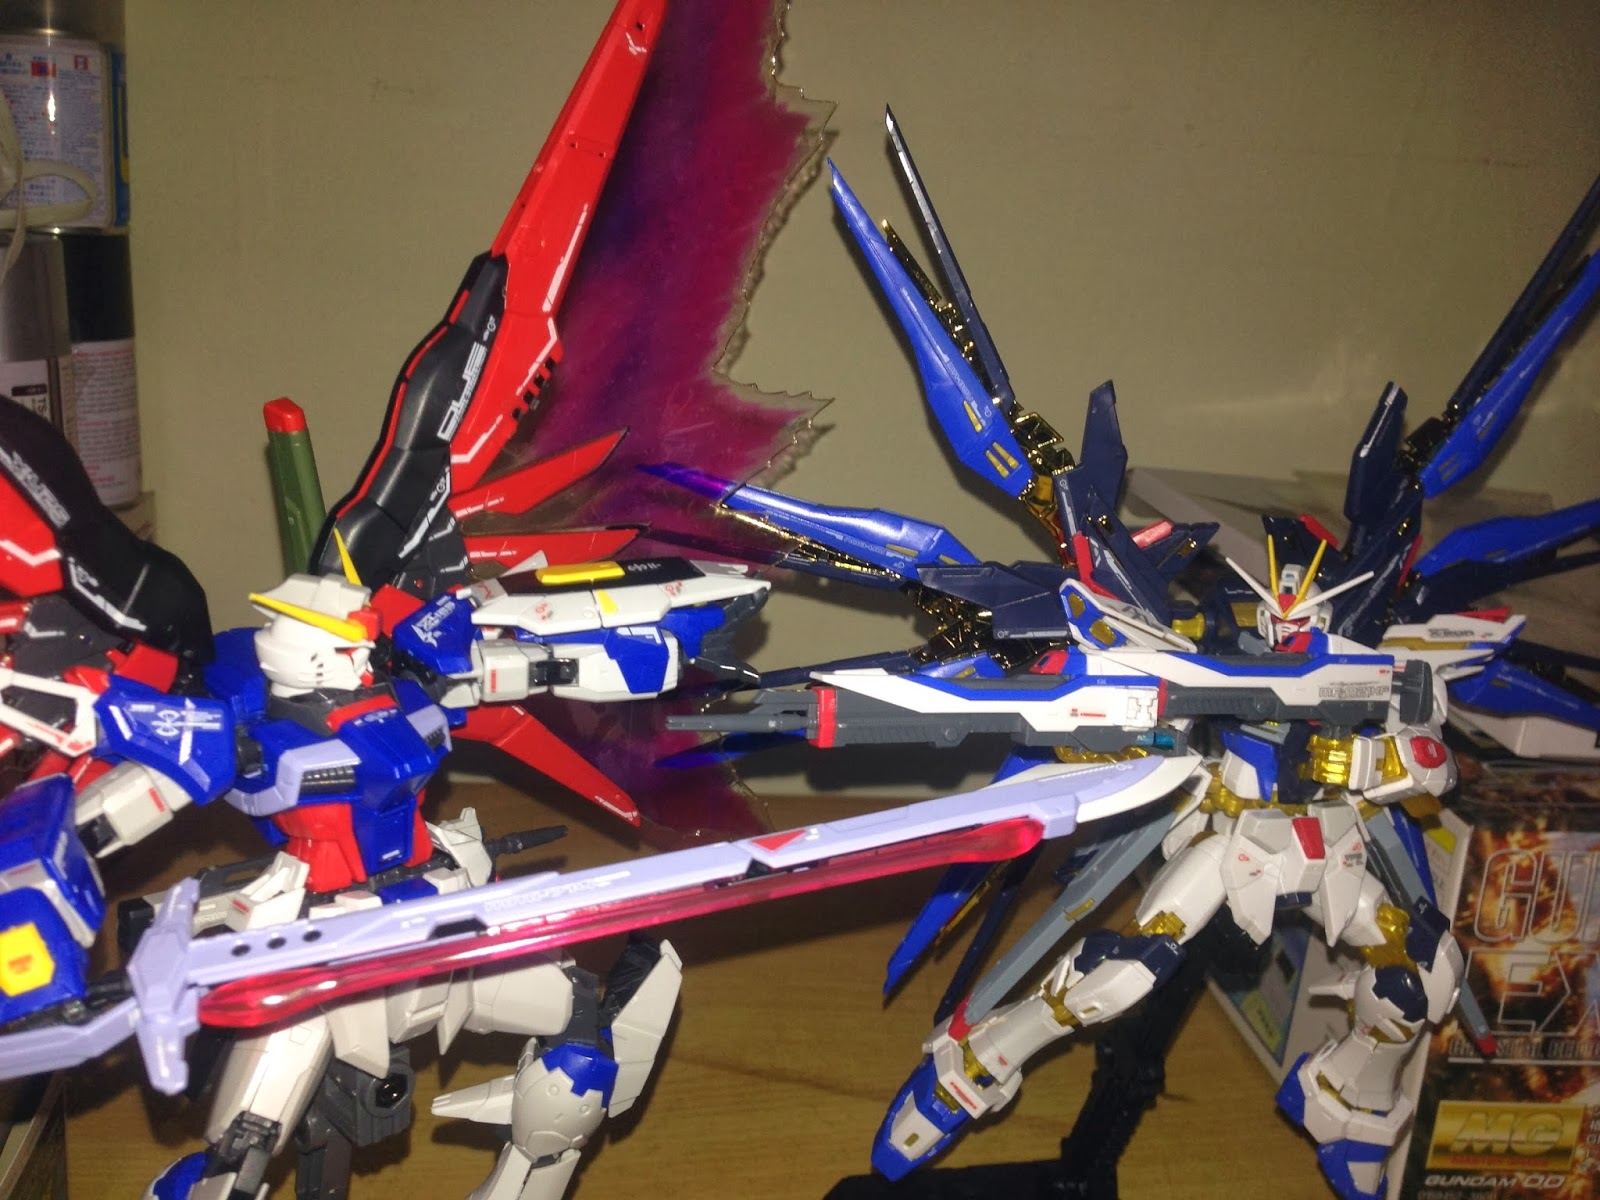 hobby store websites with 06 Misc Gundam Pose Rg Strike Freedom on Youre Not Likely Get Dds Tomb Annihilation Alive further Teacher Books Clipart together with Links besides 1 1 0 81 besides 69493.